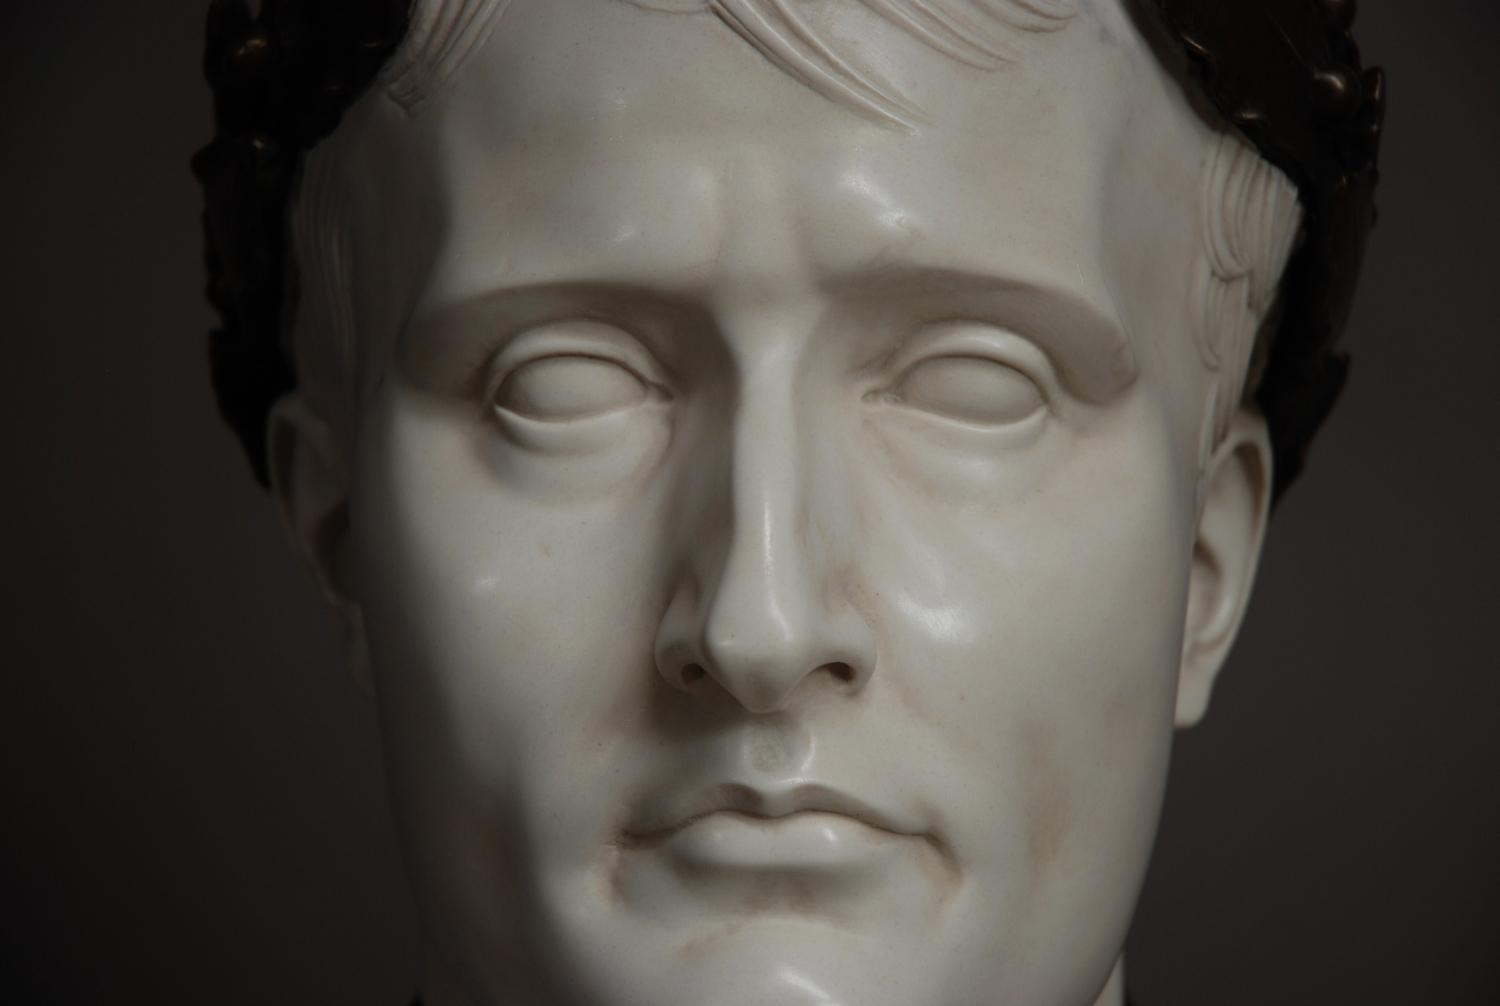 julius caesar and napoleon bonaparte Why napoleon why the fascination  such as alexander the great and julius caesar,  napoleon bonaparte rose from obscurity on a small island to become the most.